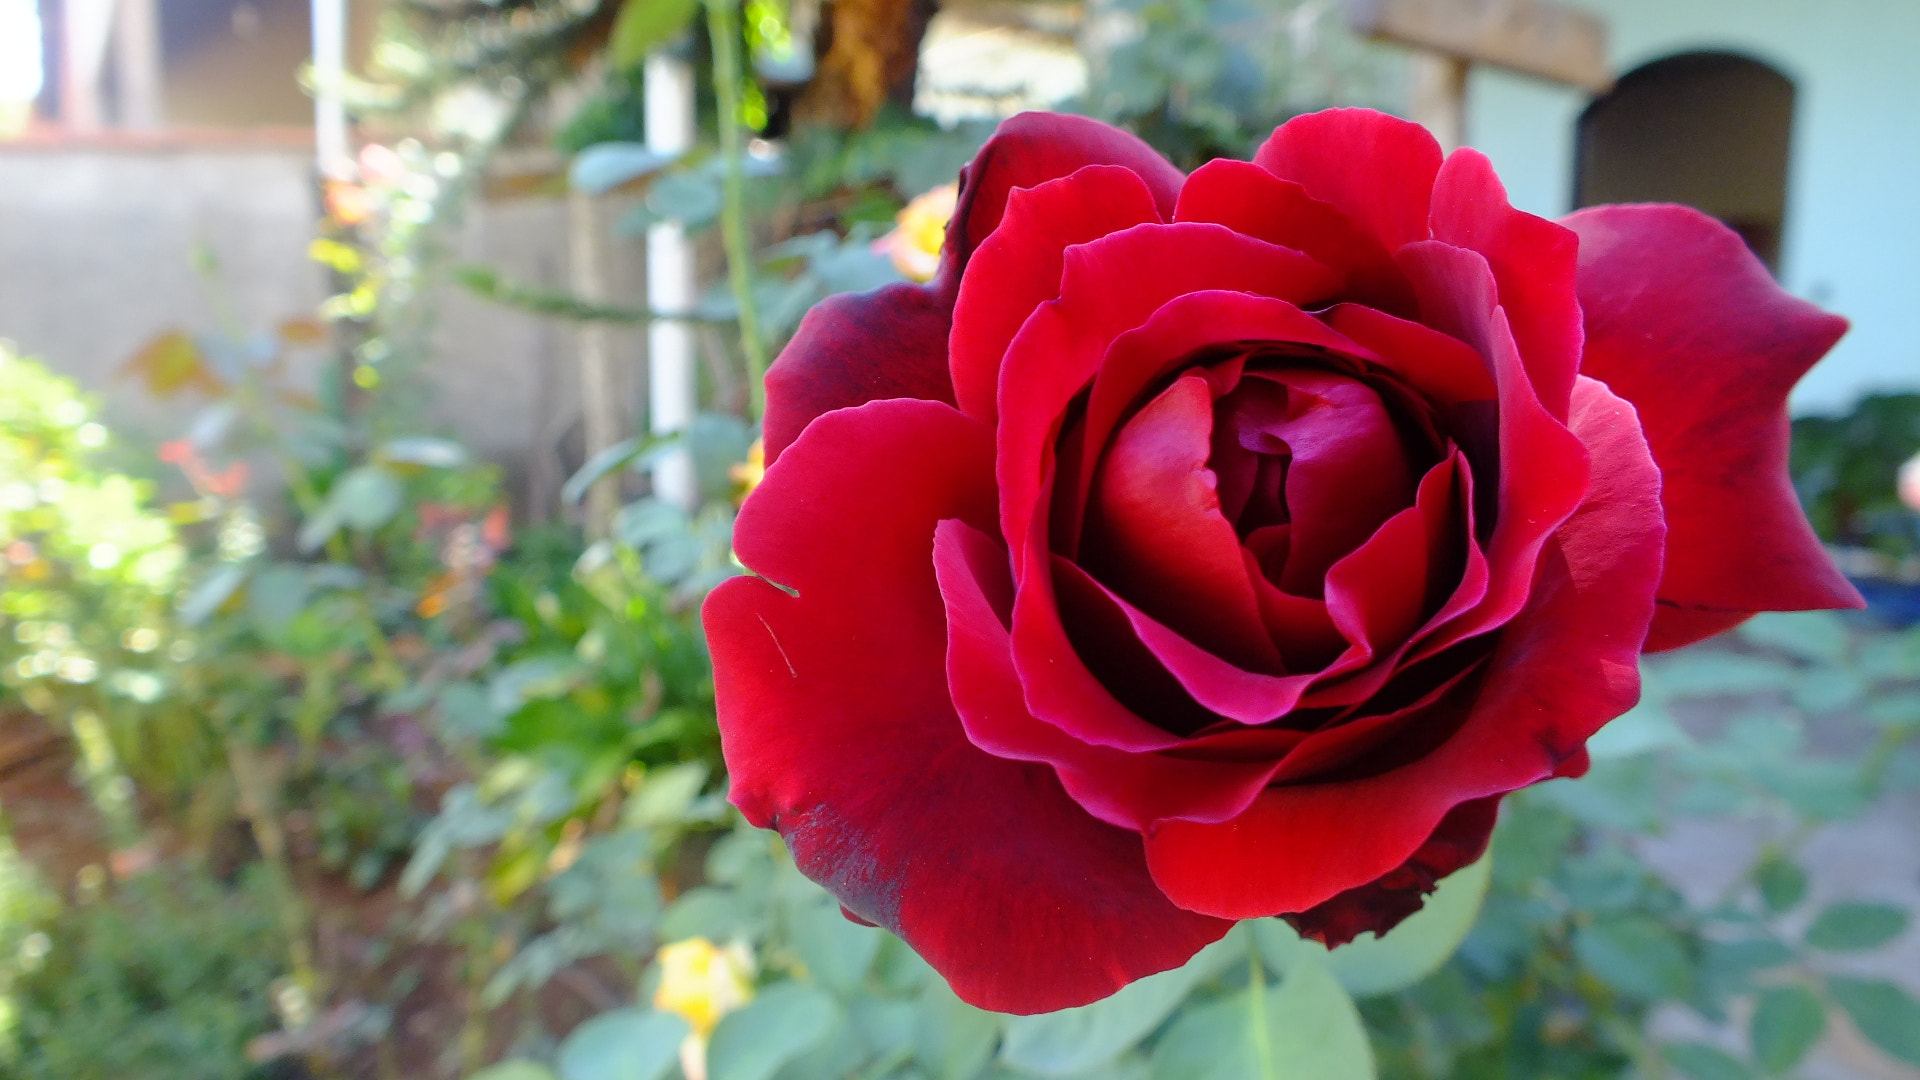 Photograph Red Rose by Eduardo Rolim on 500px